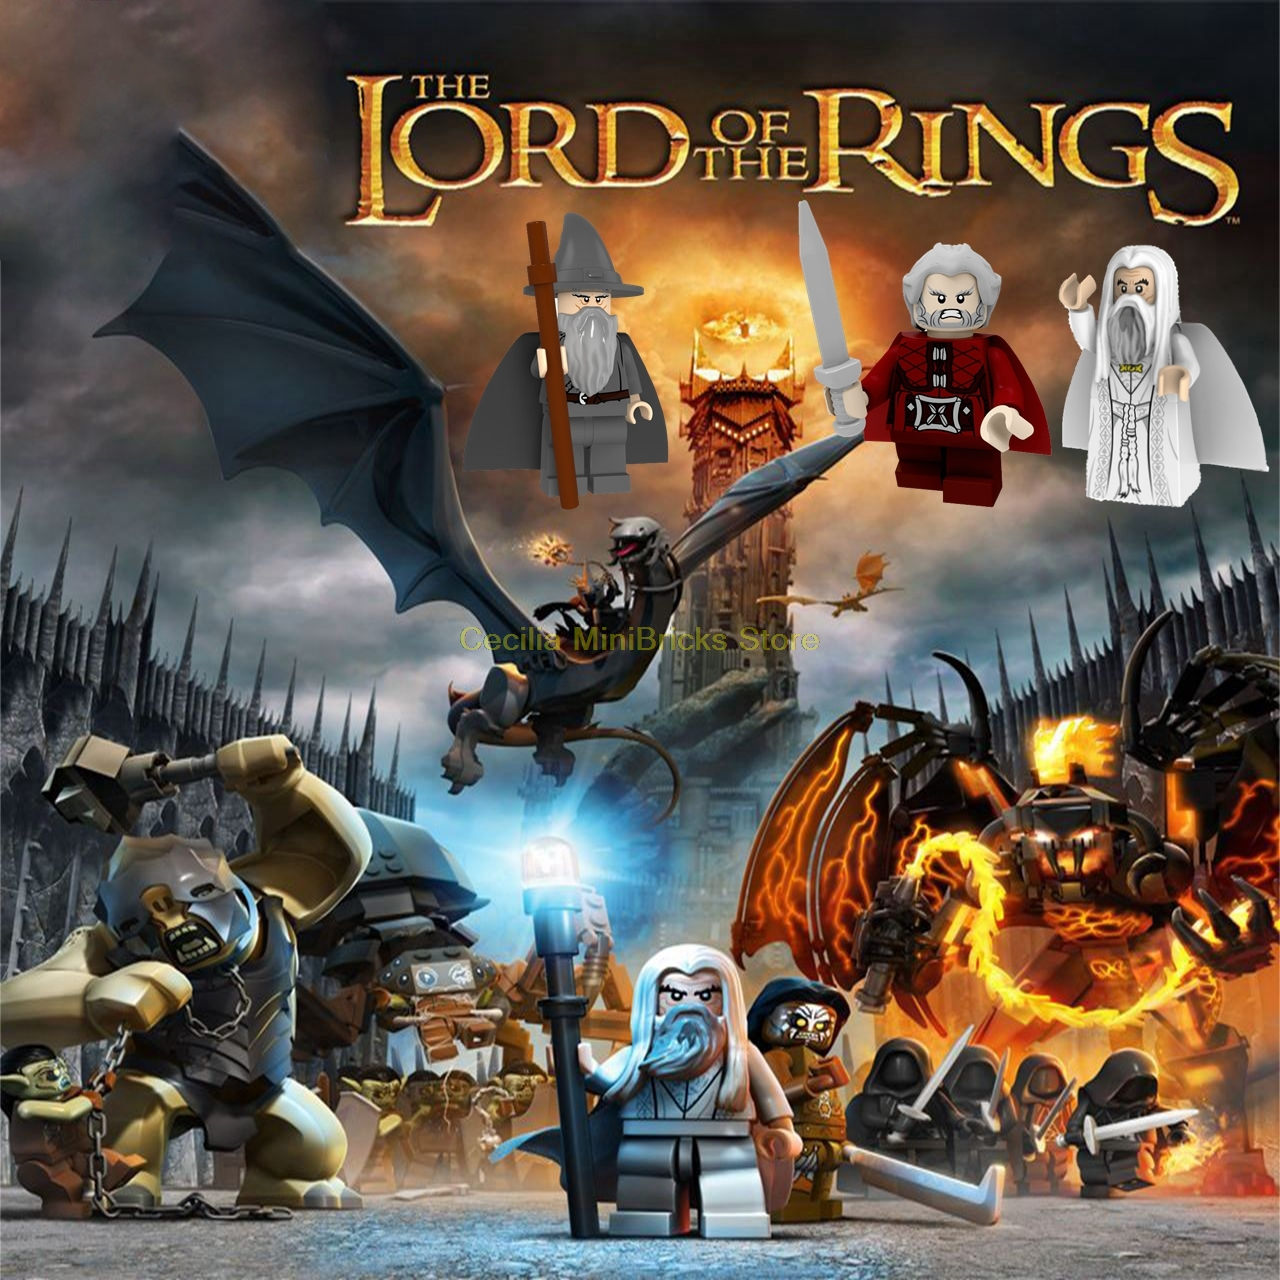 Legoing Hobbit The Battle Of The Five Armies Gandalf Bilbo Smaug Building Blocks Compatible With Legoings Toys For Children Toys & Hobbies